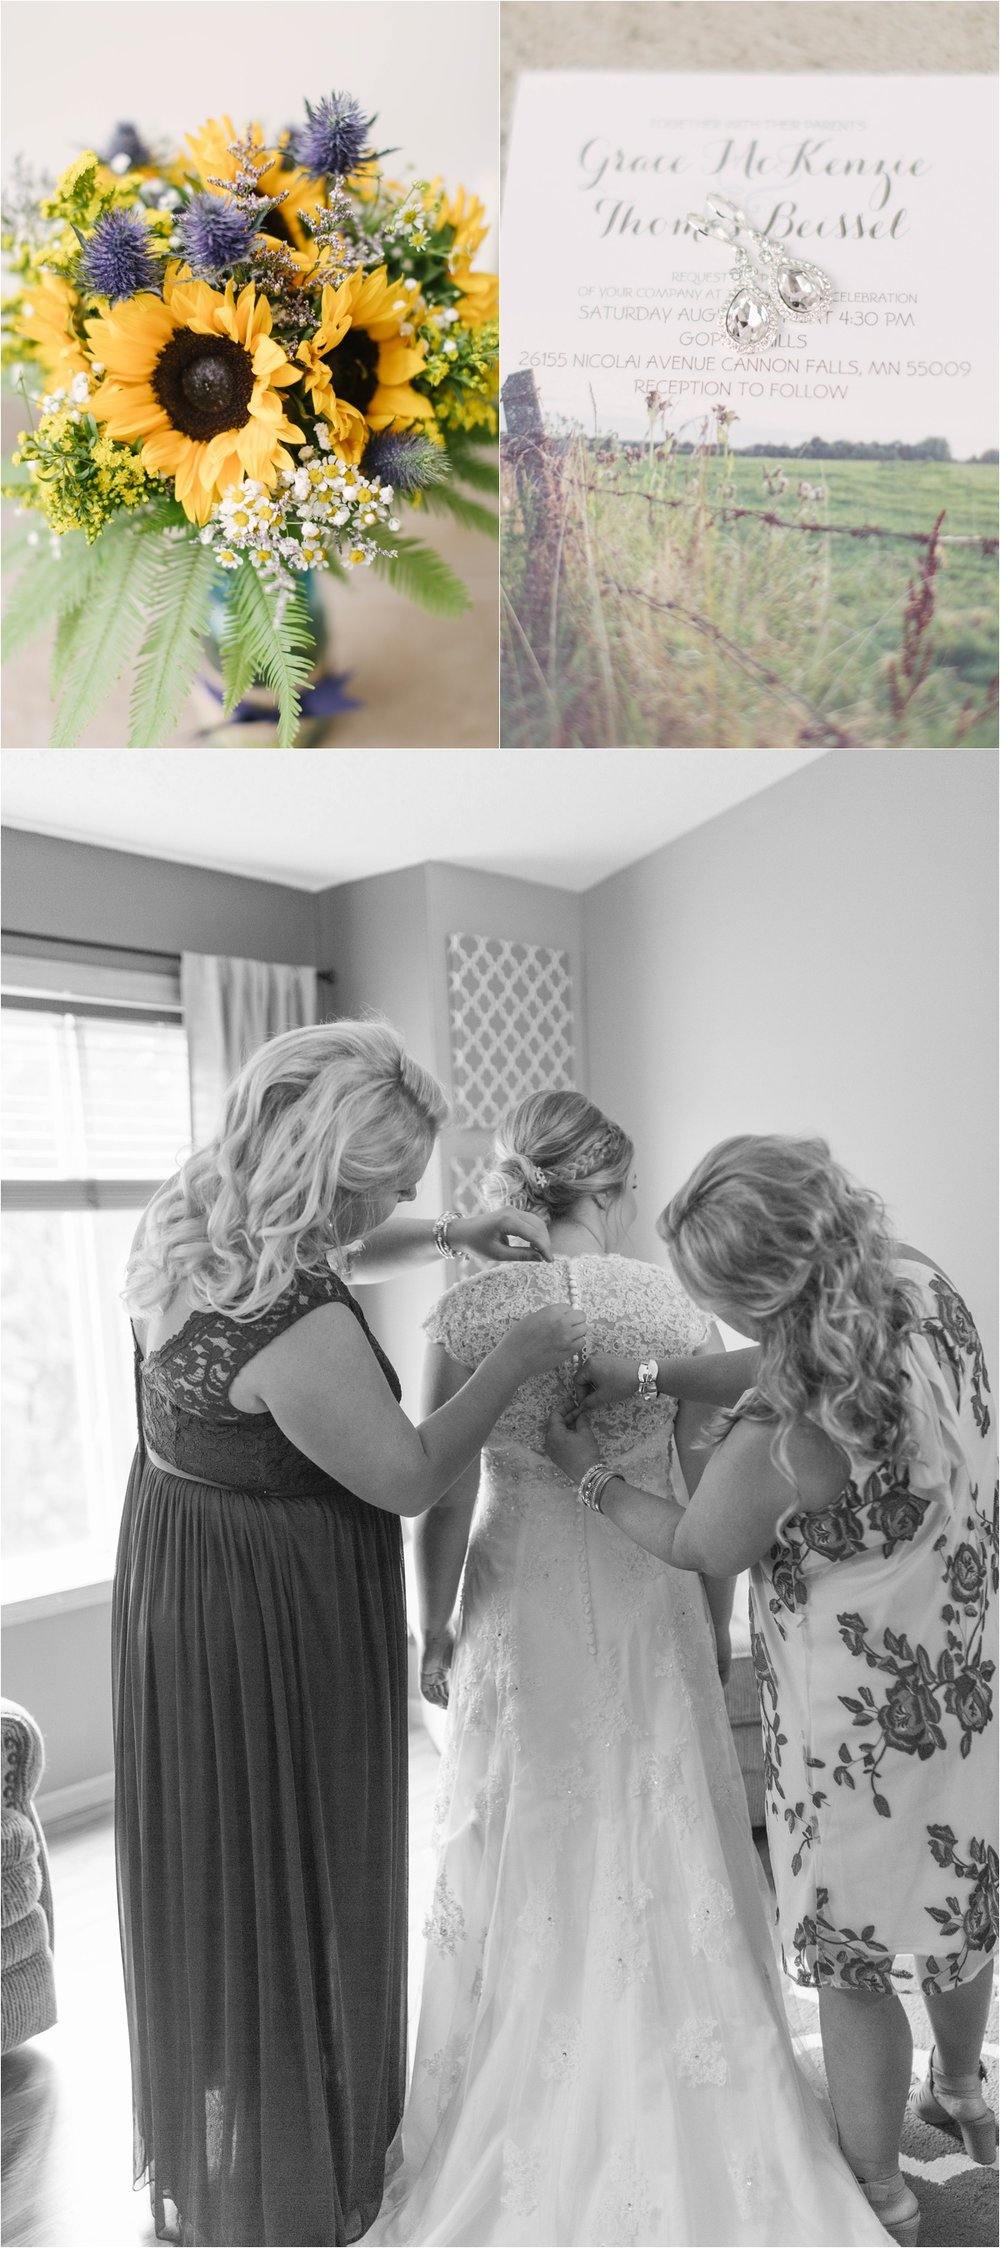 Stephanie Lynn Photography- Biessel Wedding, country charm, golf course wedding- Canon Falls, MN_0035.jpg